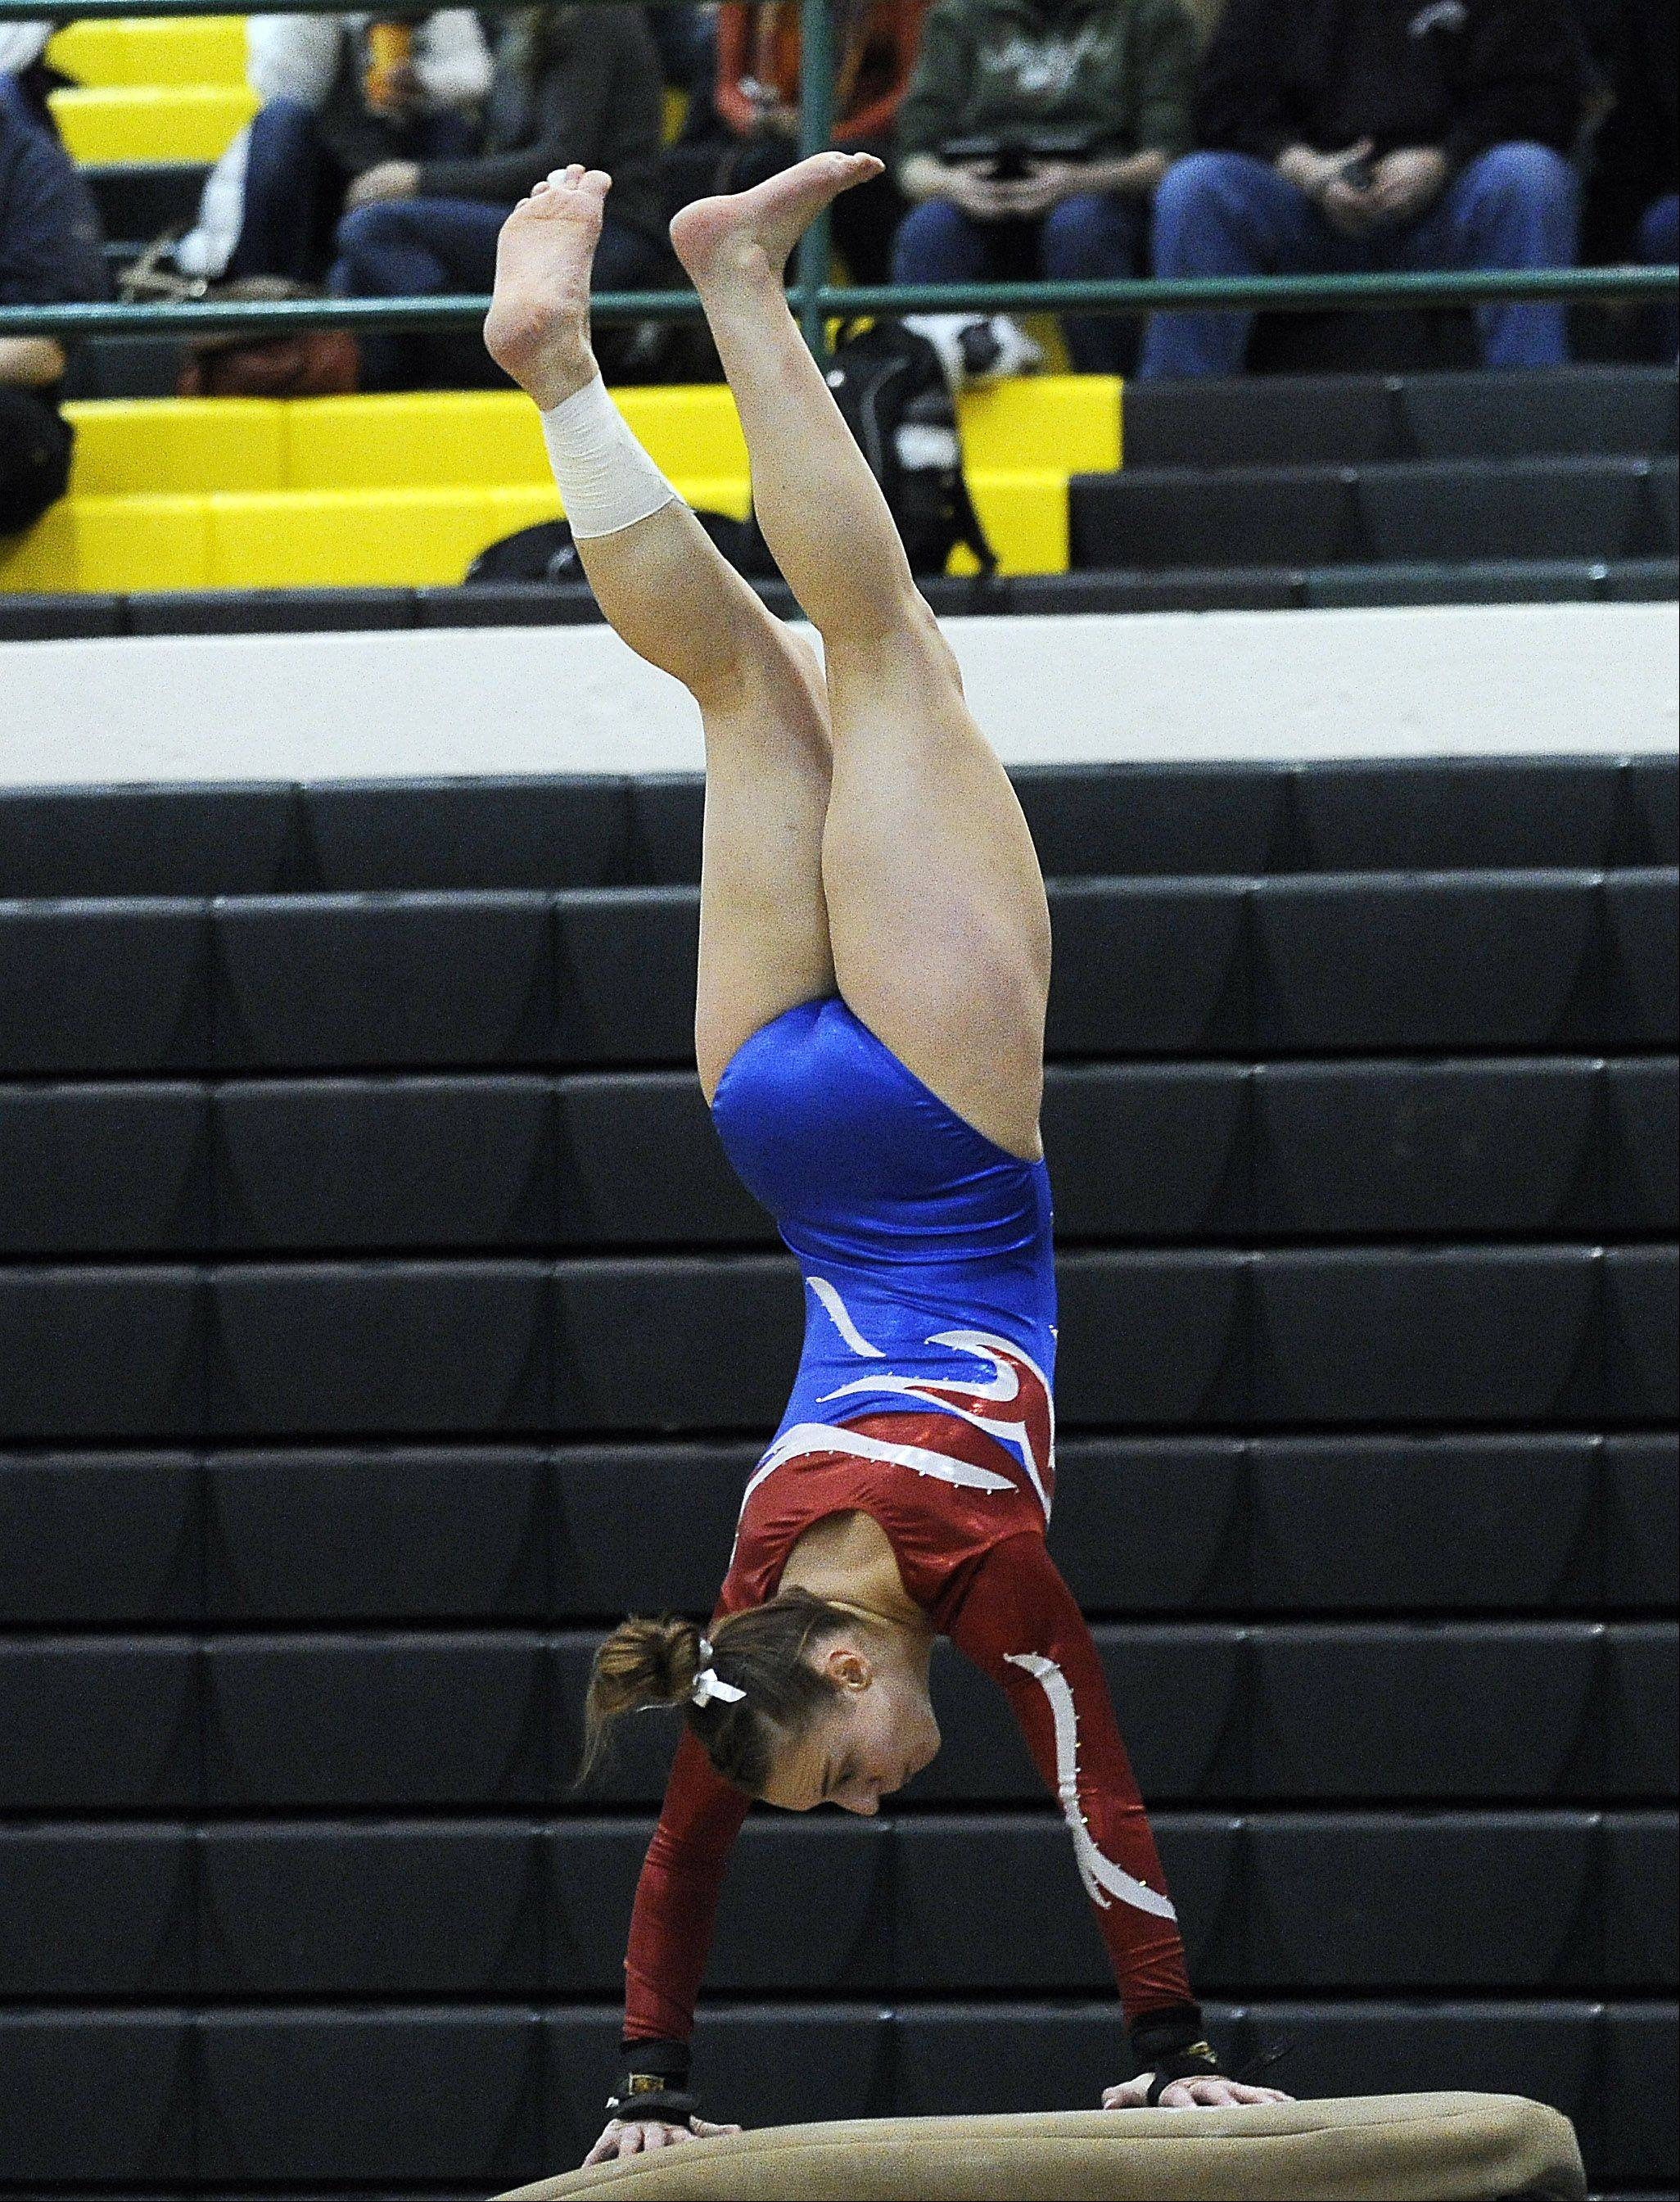 Dundee-Crown's Claire Blume rockets off the vault during sectional action Monday at Fremd.